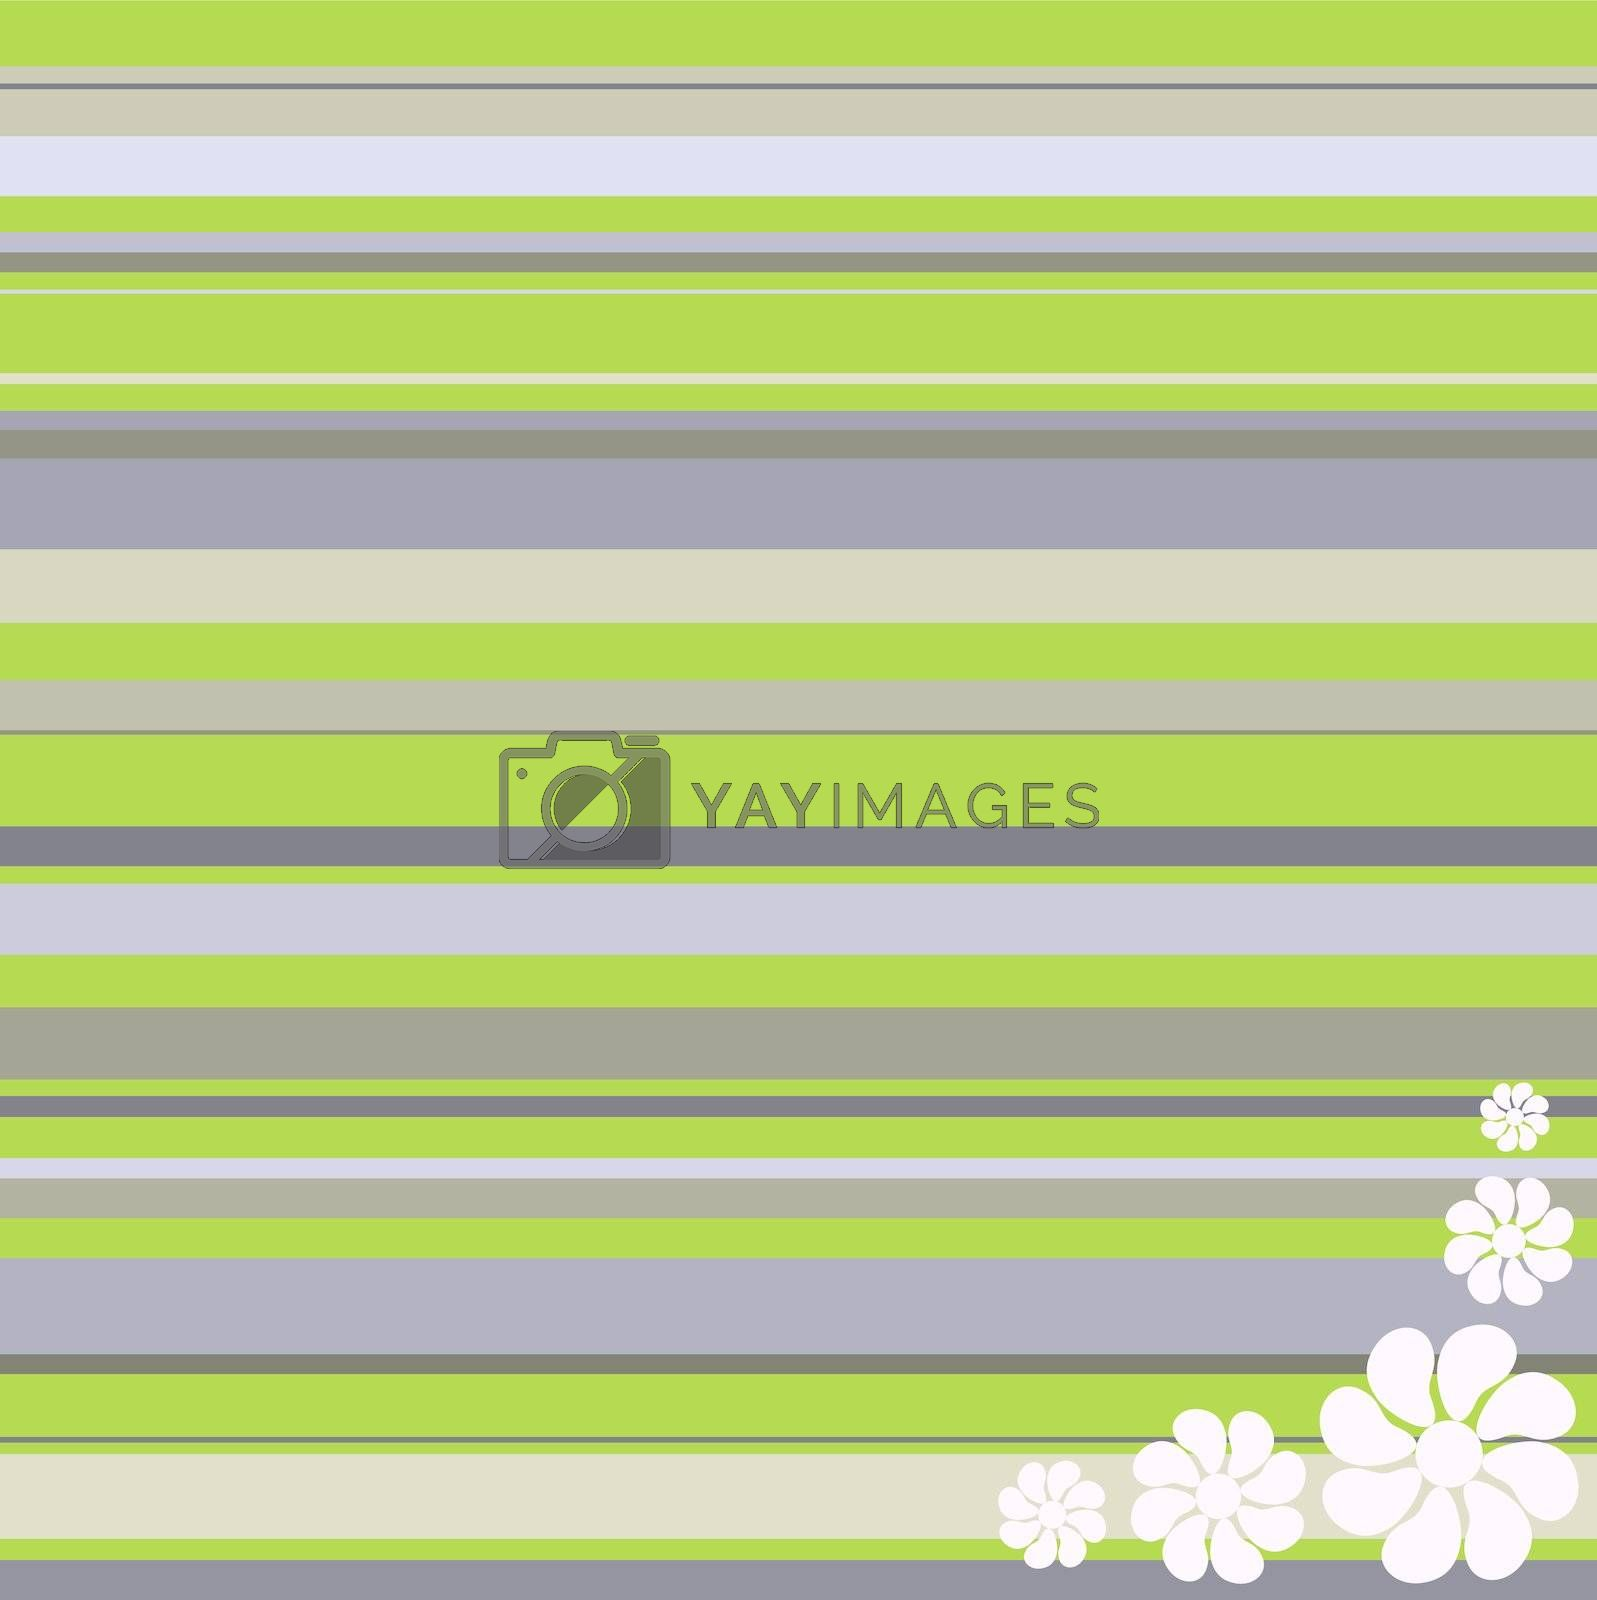 fine vintage background with white flowers